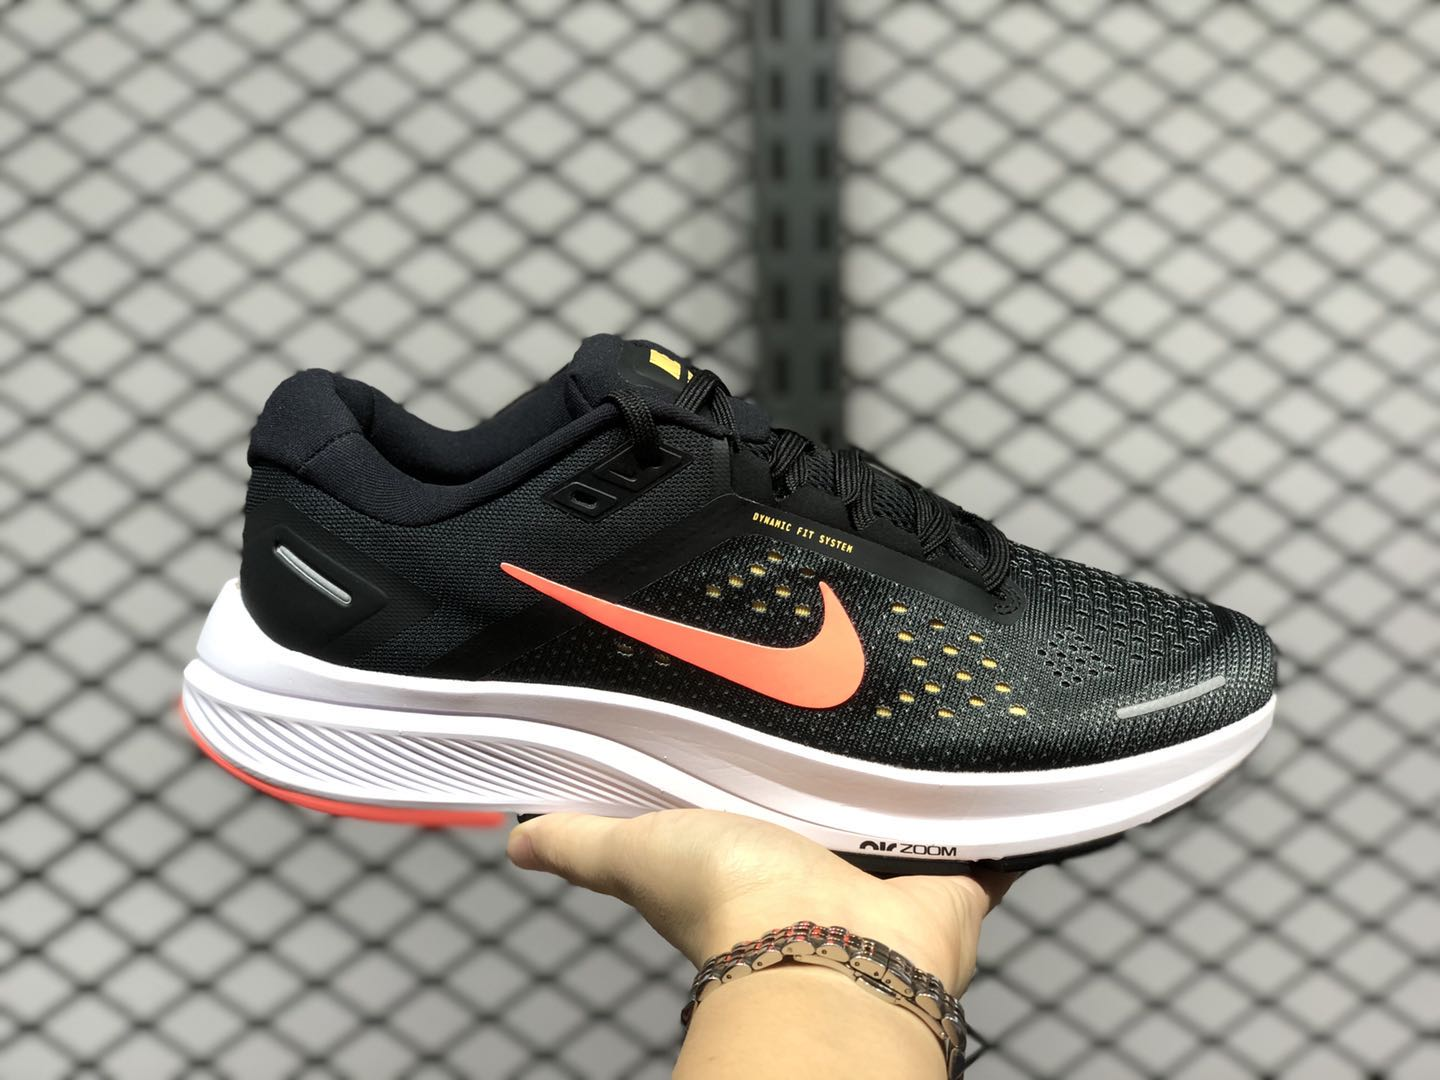 Buy CZ6720-006 Nike Zoom Structure 23